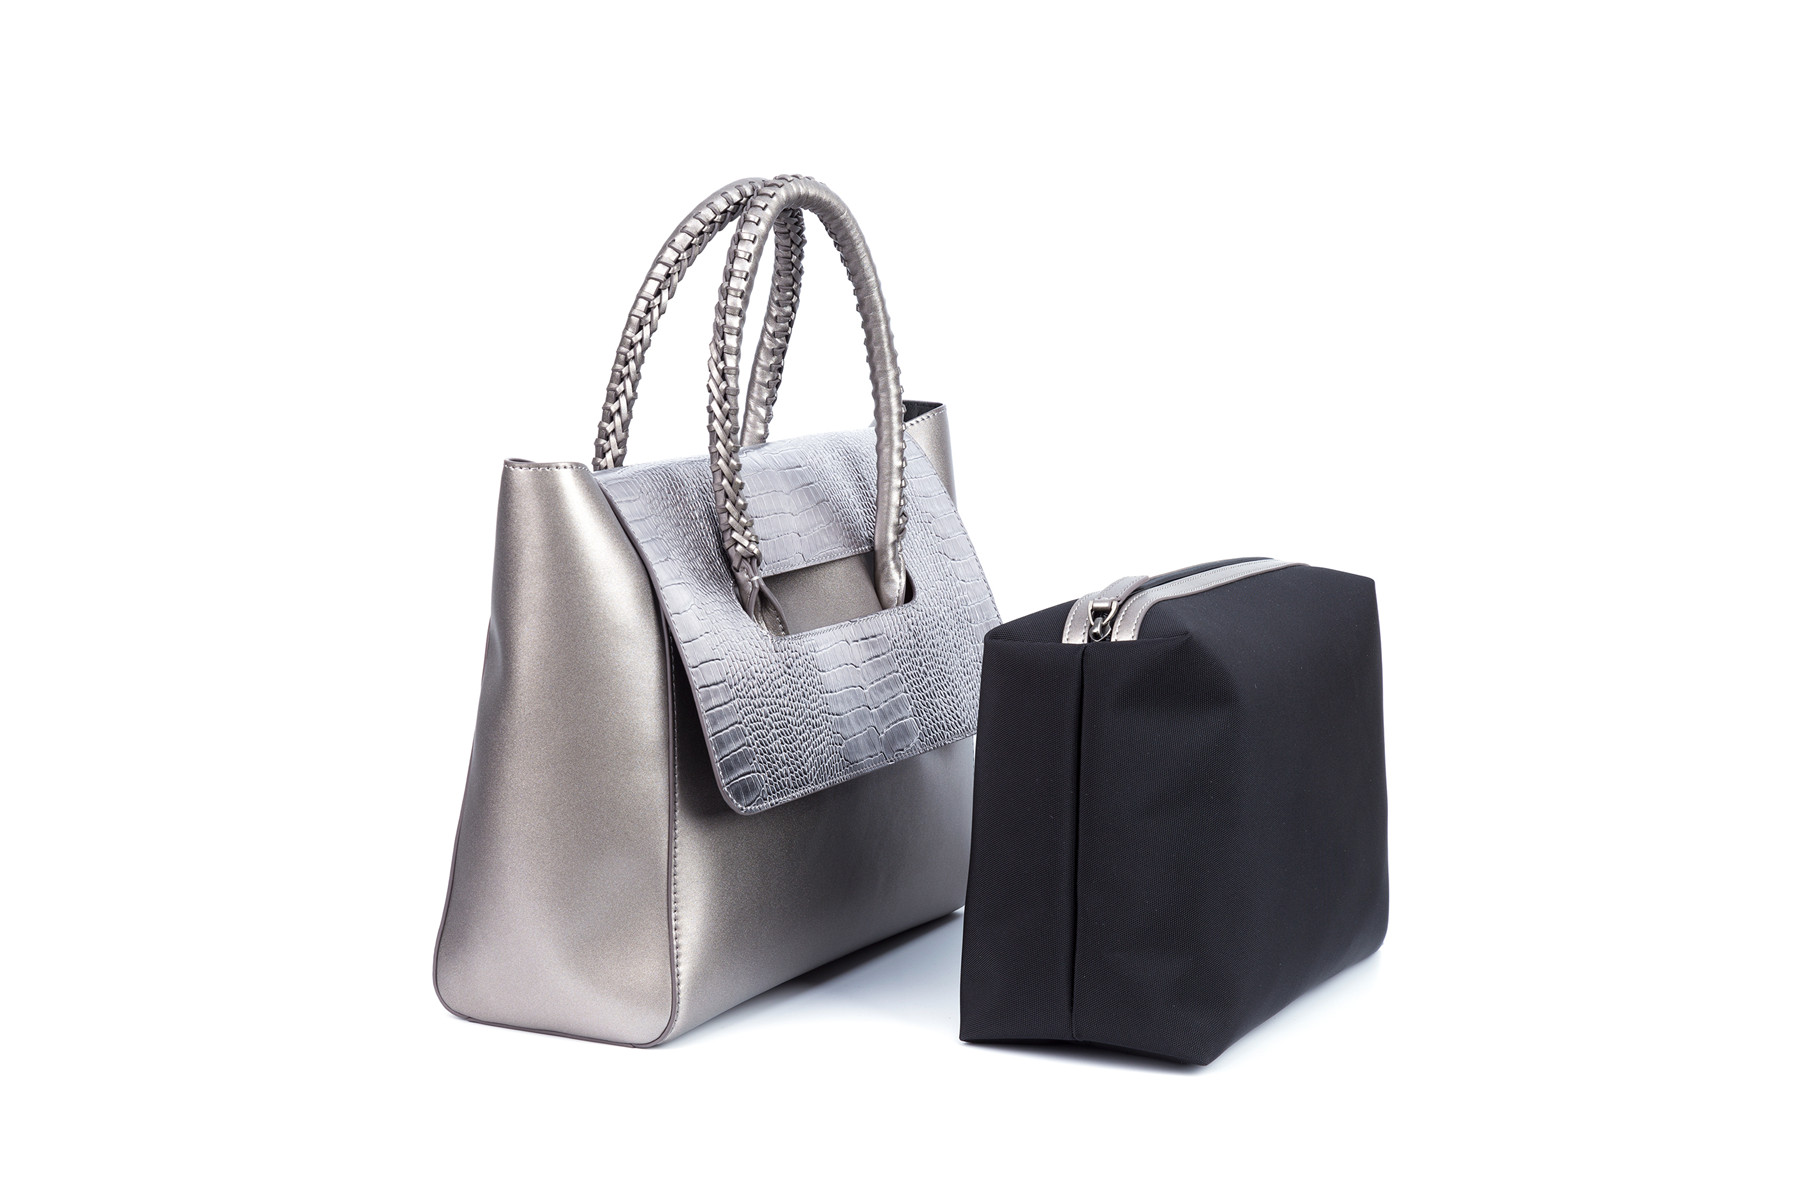 GF bags-Bulk Luxury Handbags Manufacturer, Affordable Handbags | Gf Bags-3